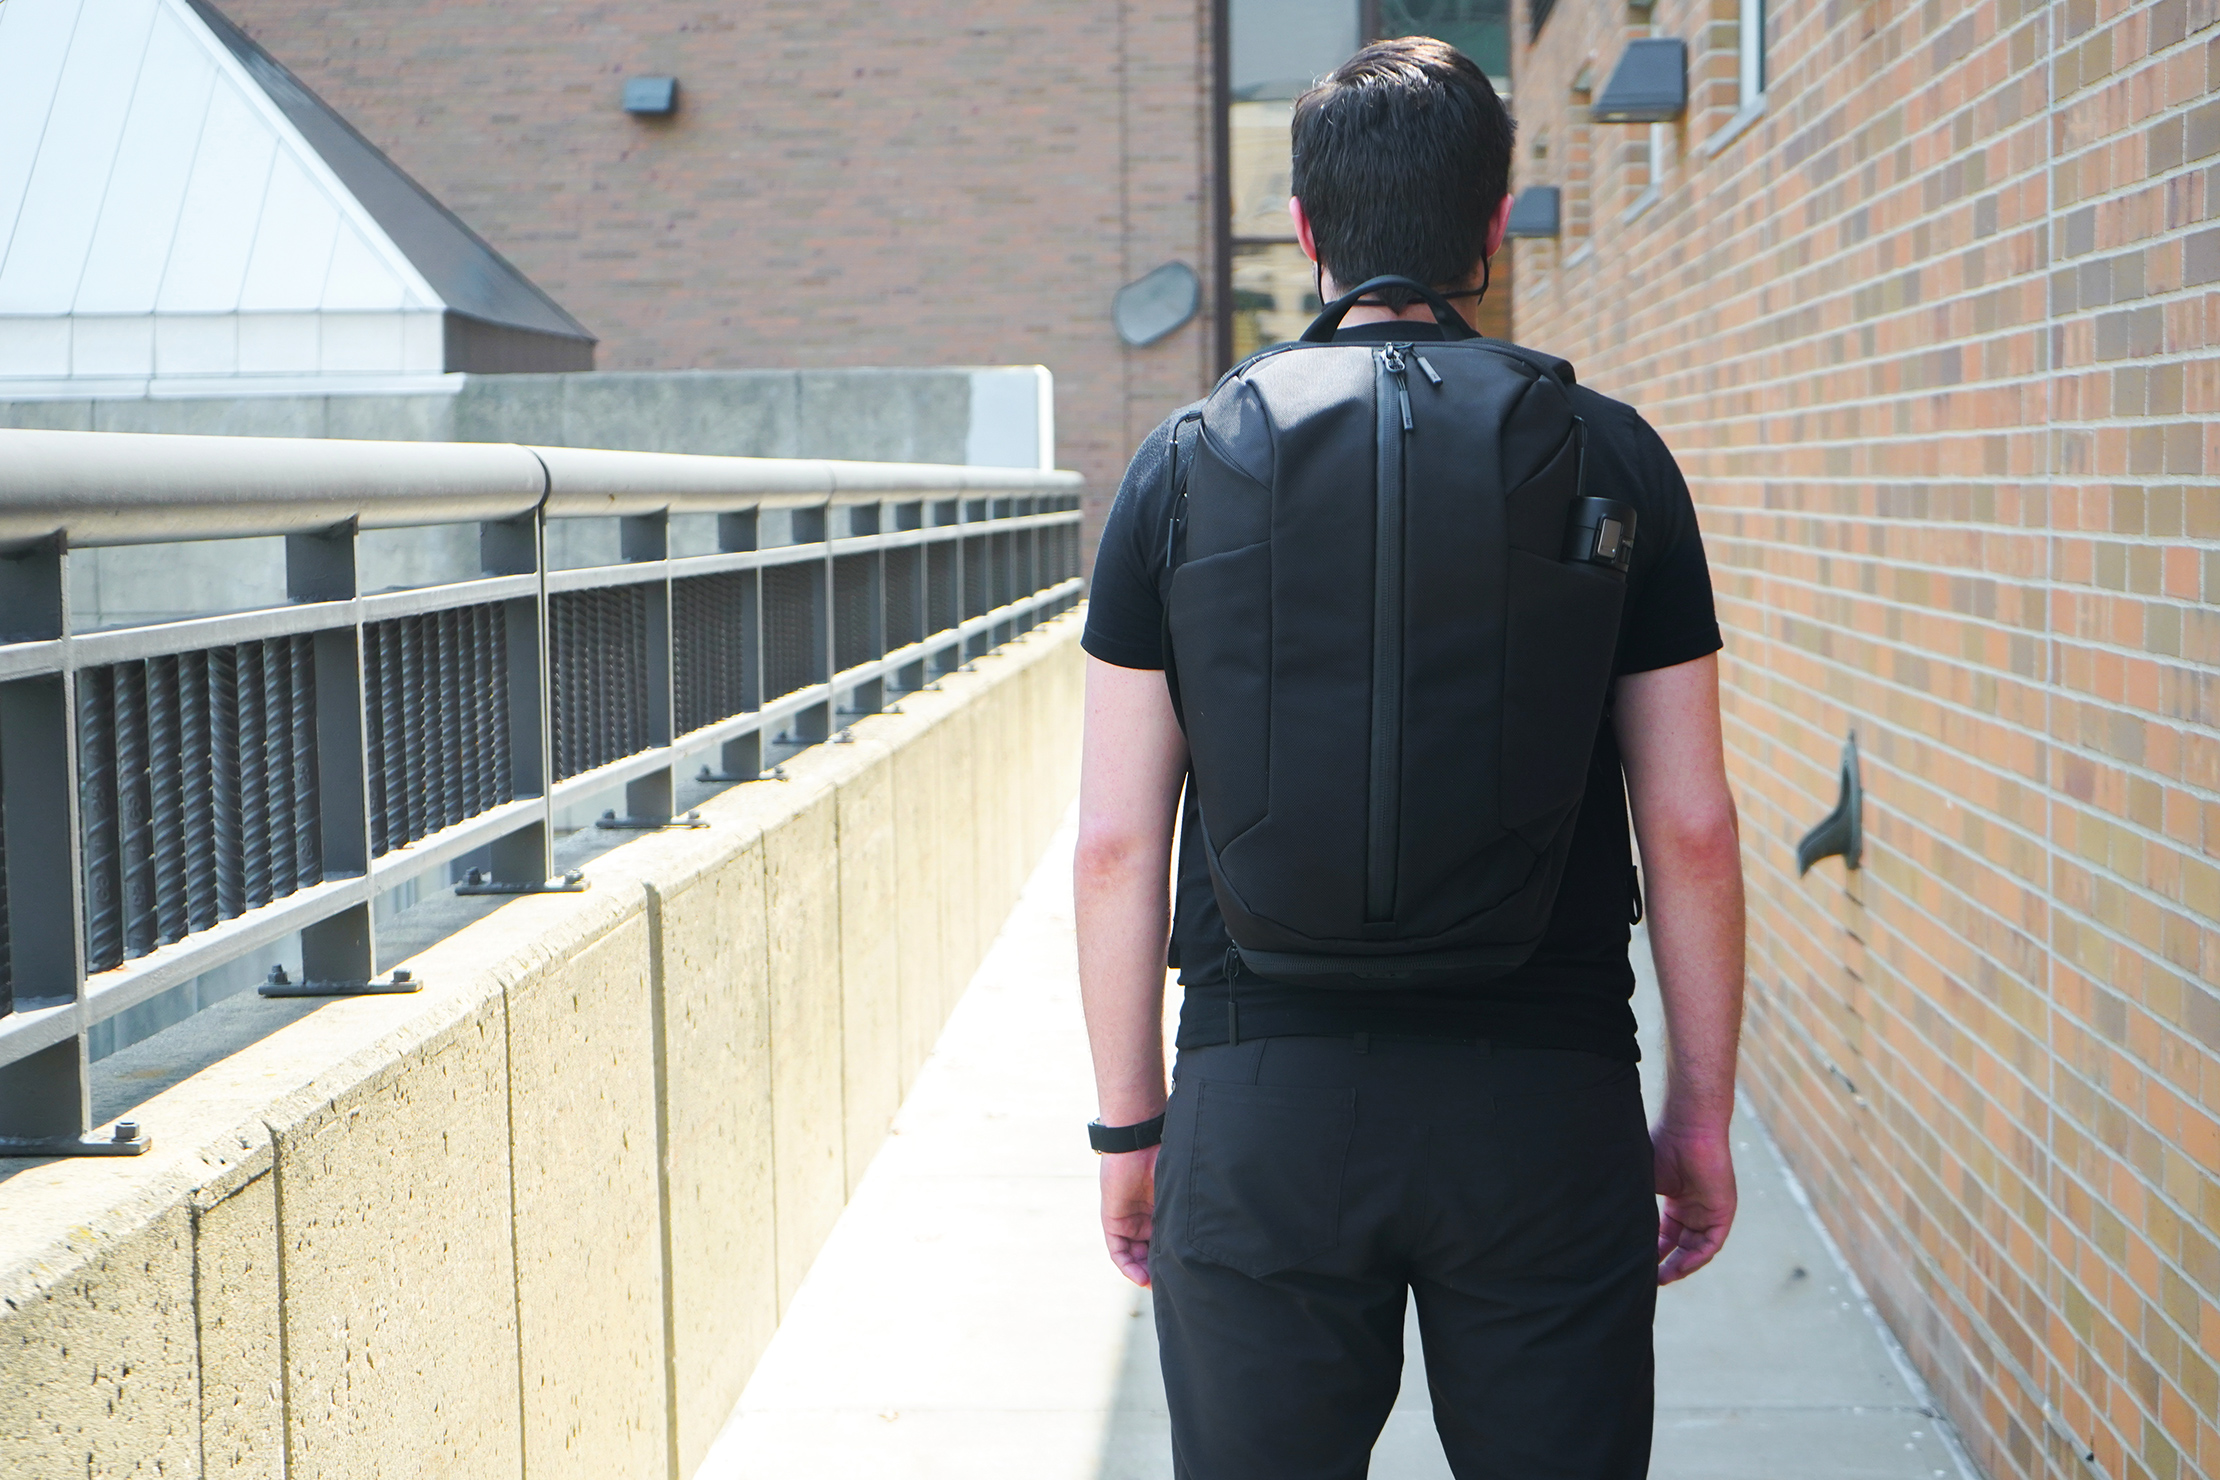 Aer Duffel Pack 3 | Taking the bag to the gym